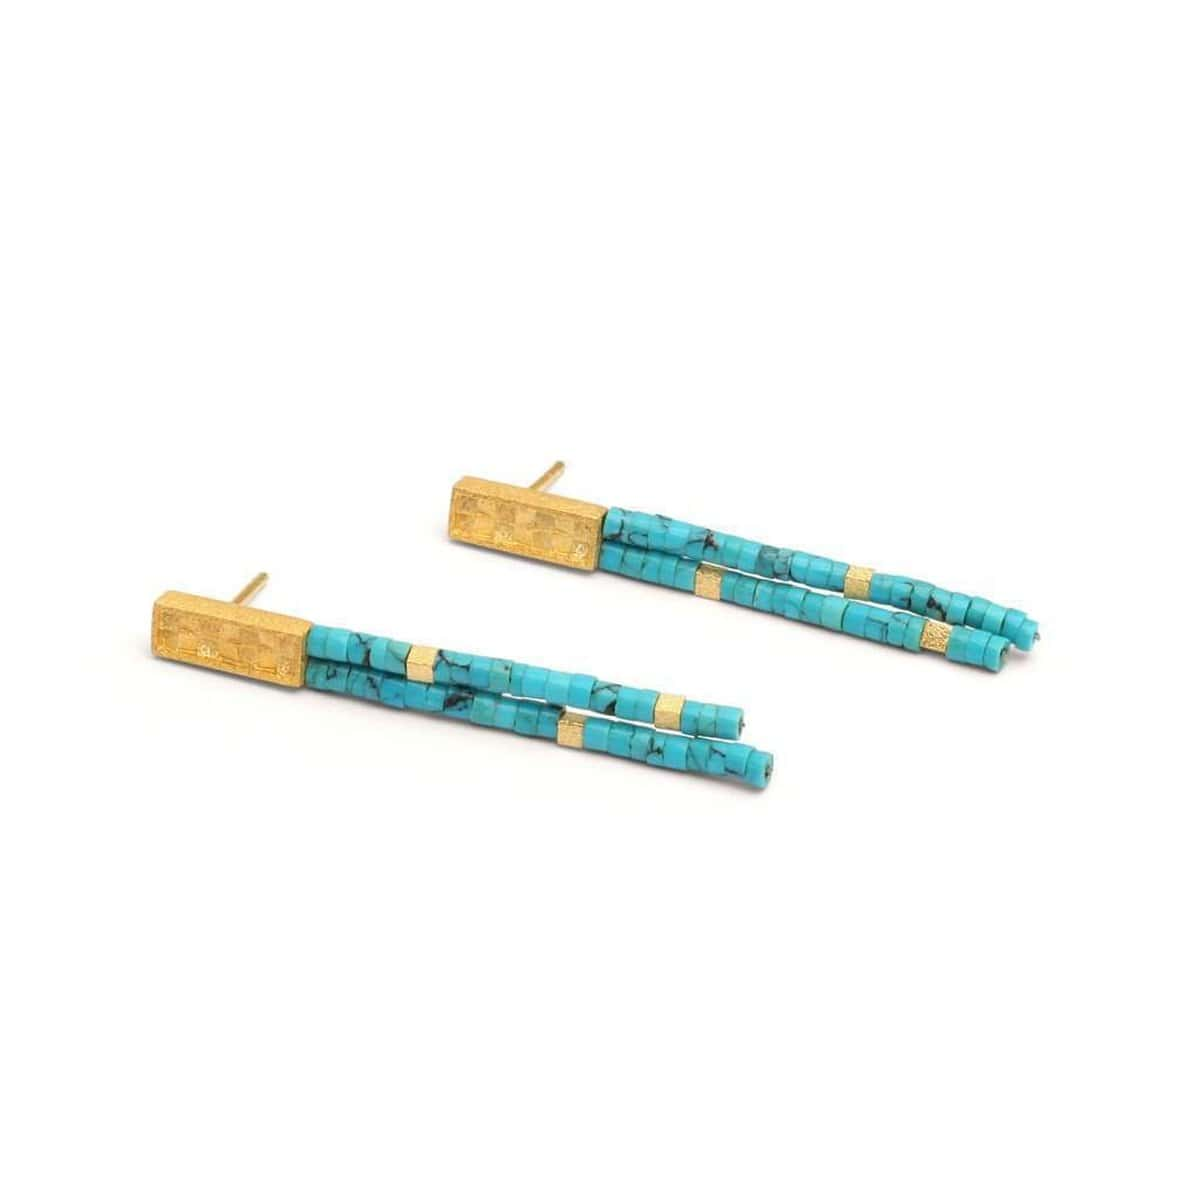 Orfini Turquoise Earrings - 15791256-Bernd Wolf-Renee Taylor Gallery